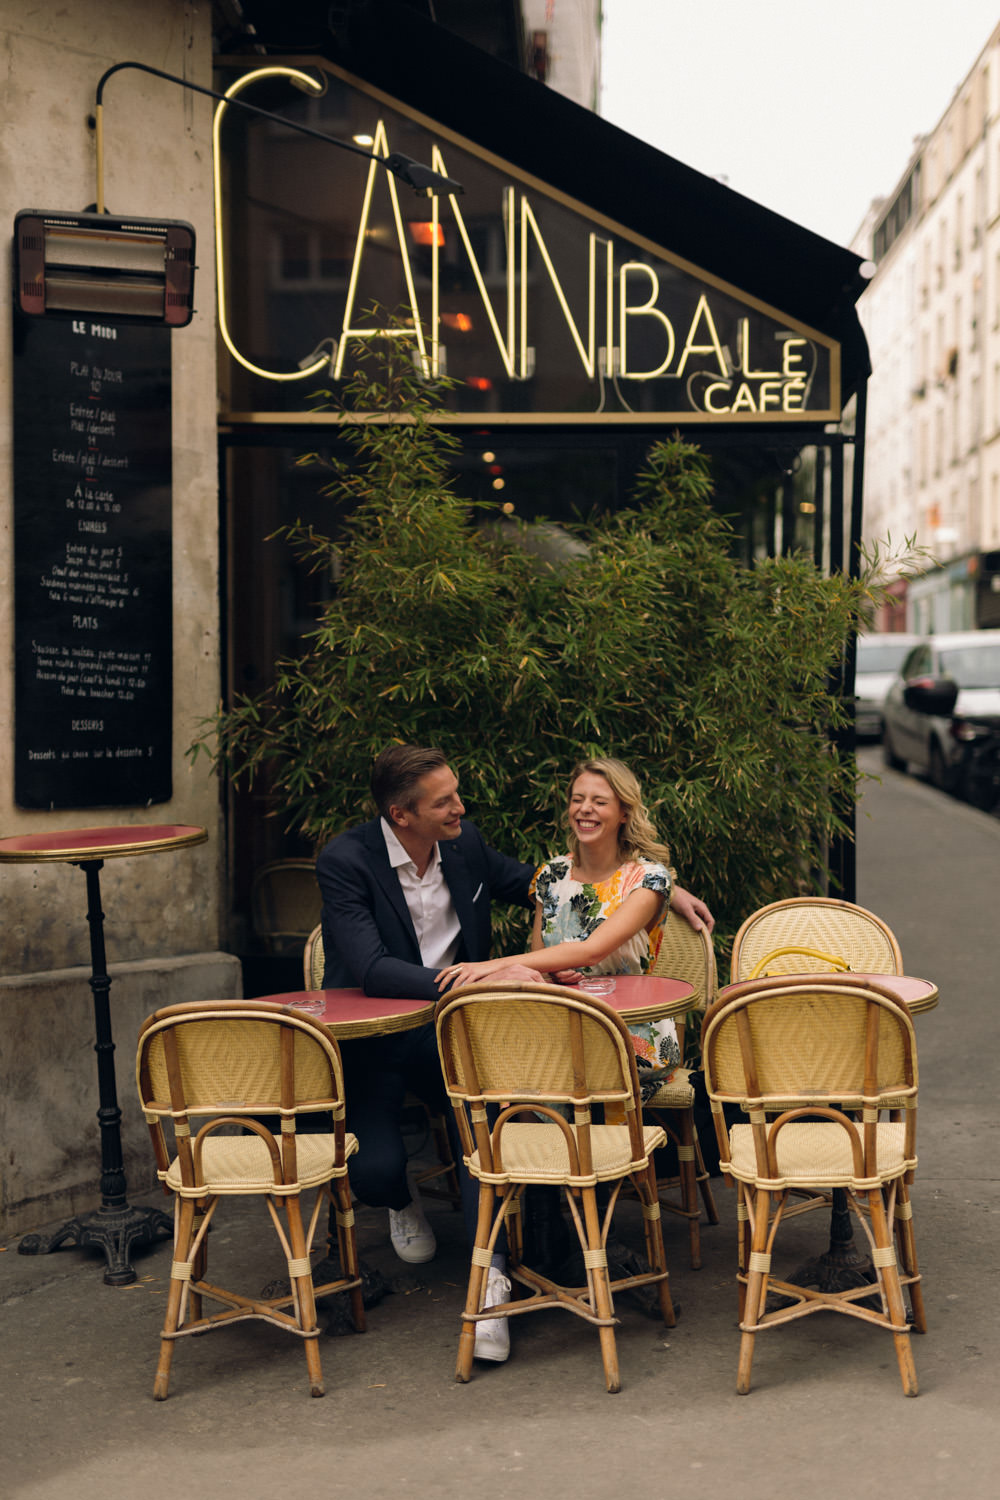 Couple photo session at a terrace café in Paris